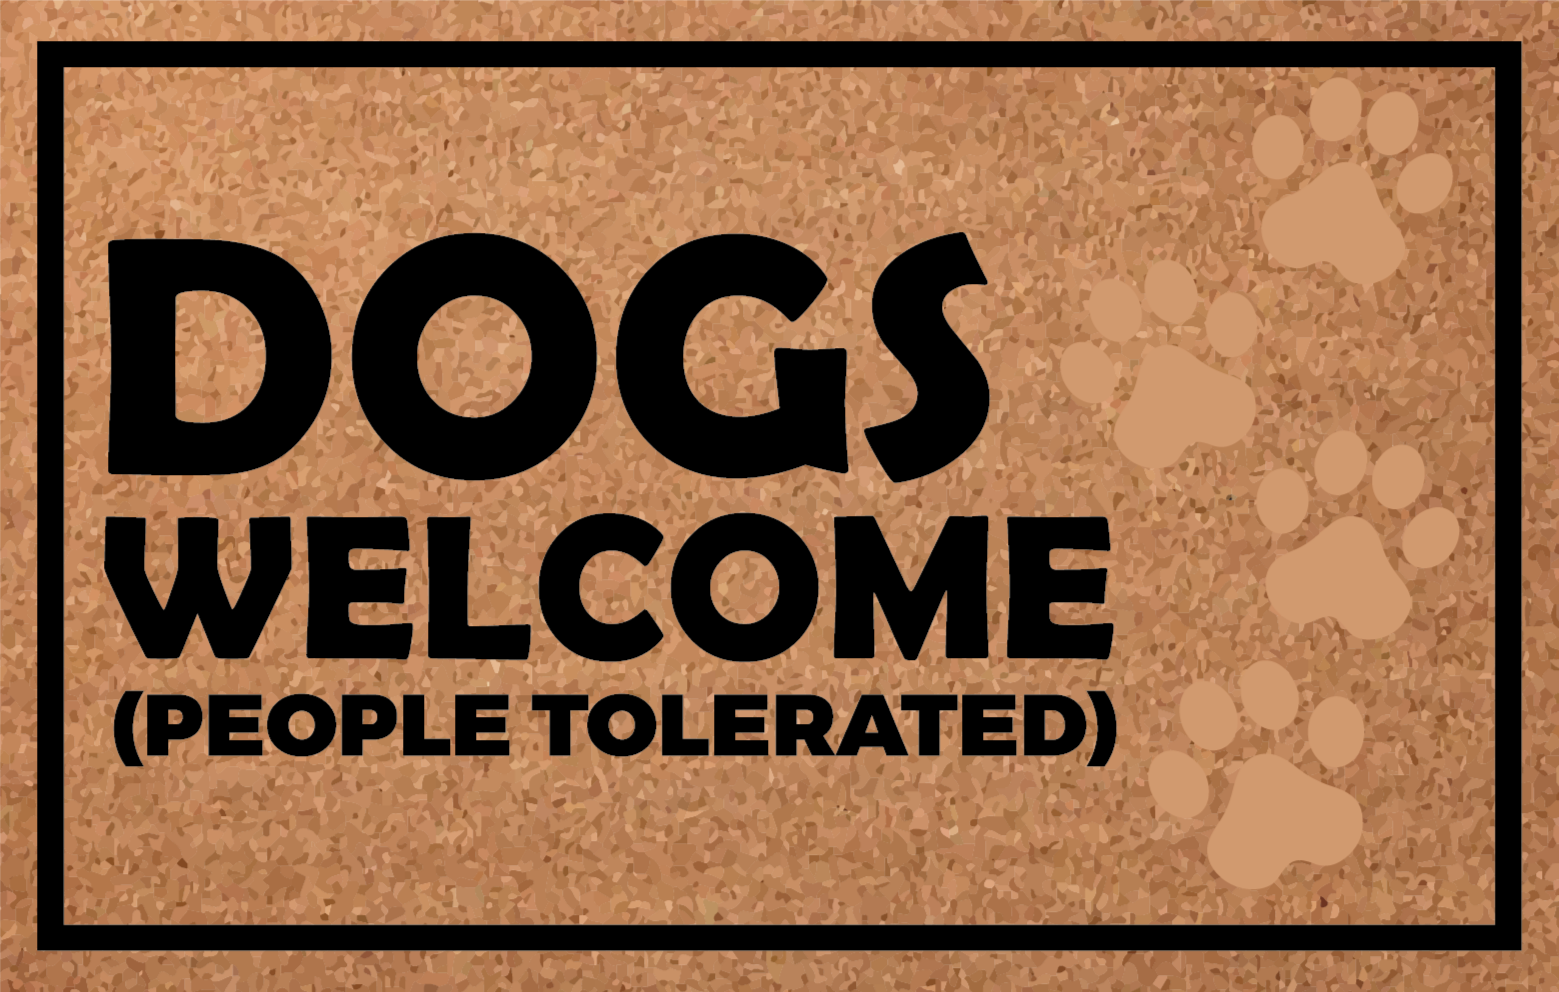 TenStickers. Dogs welcome, people tolerated bespoke rugs. This fantastic vinyl rug design features the text 'Dogs welcome' in a large font. High quality materials are always used.